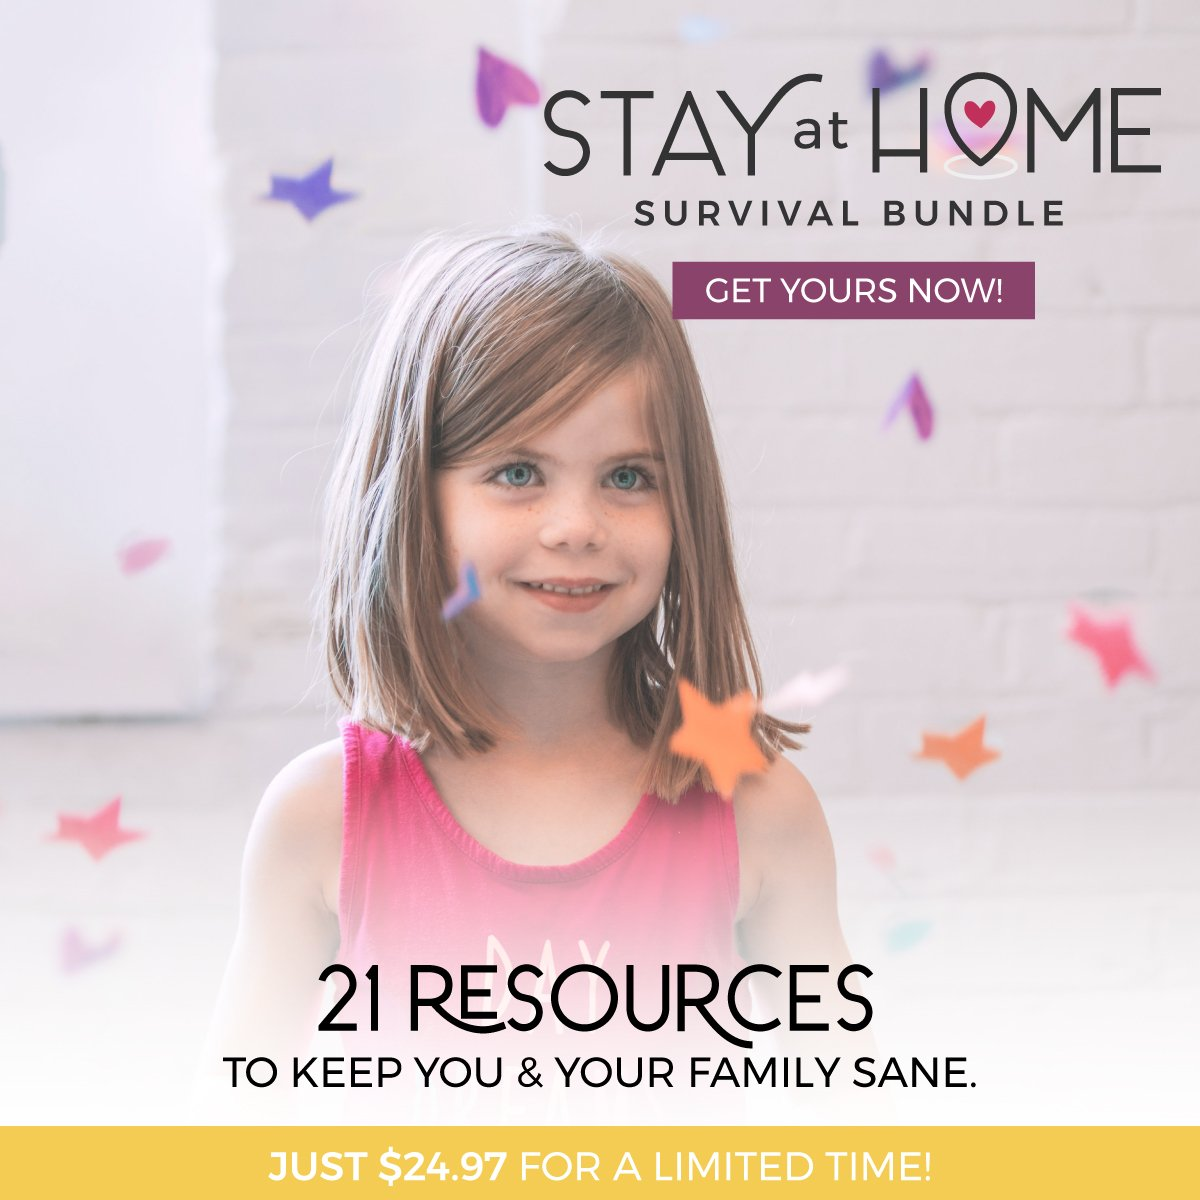 Stay at home survival bundle helpful resources